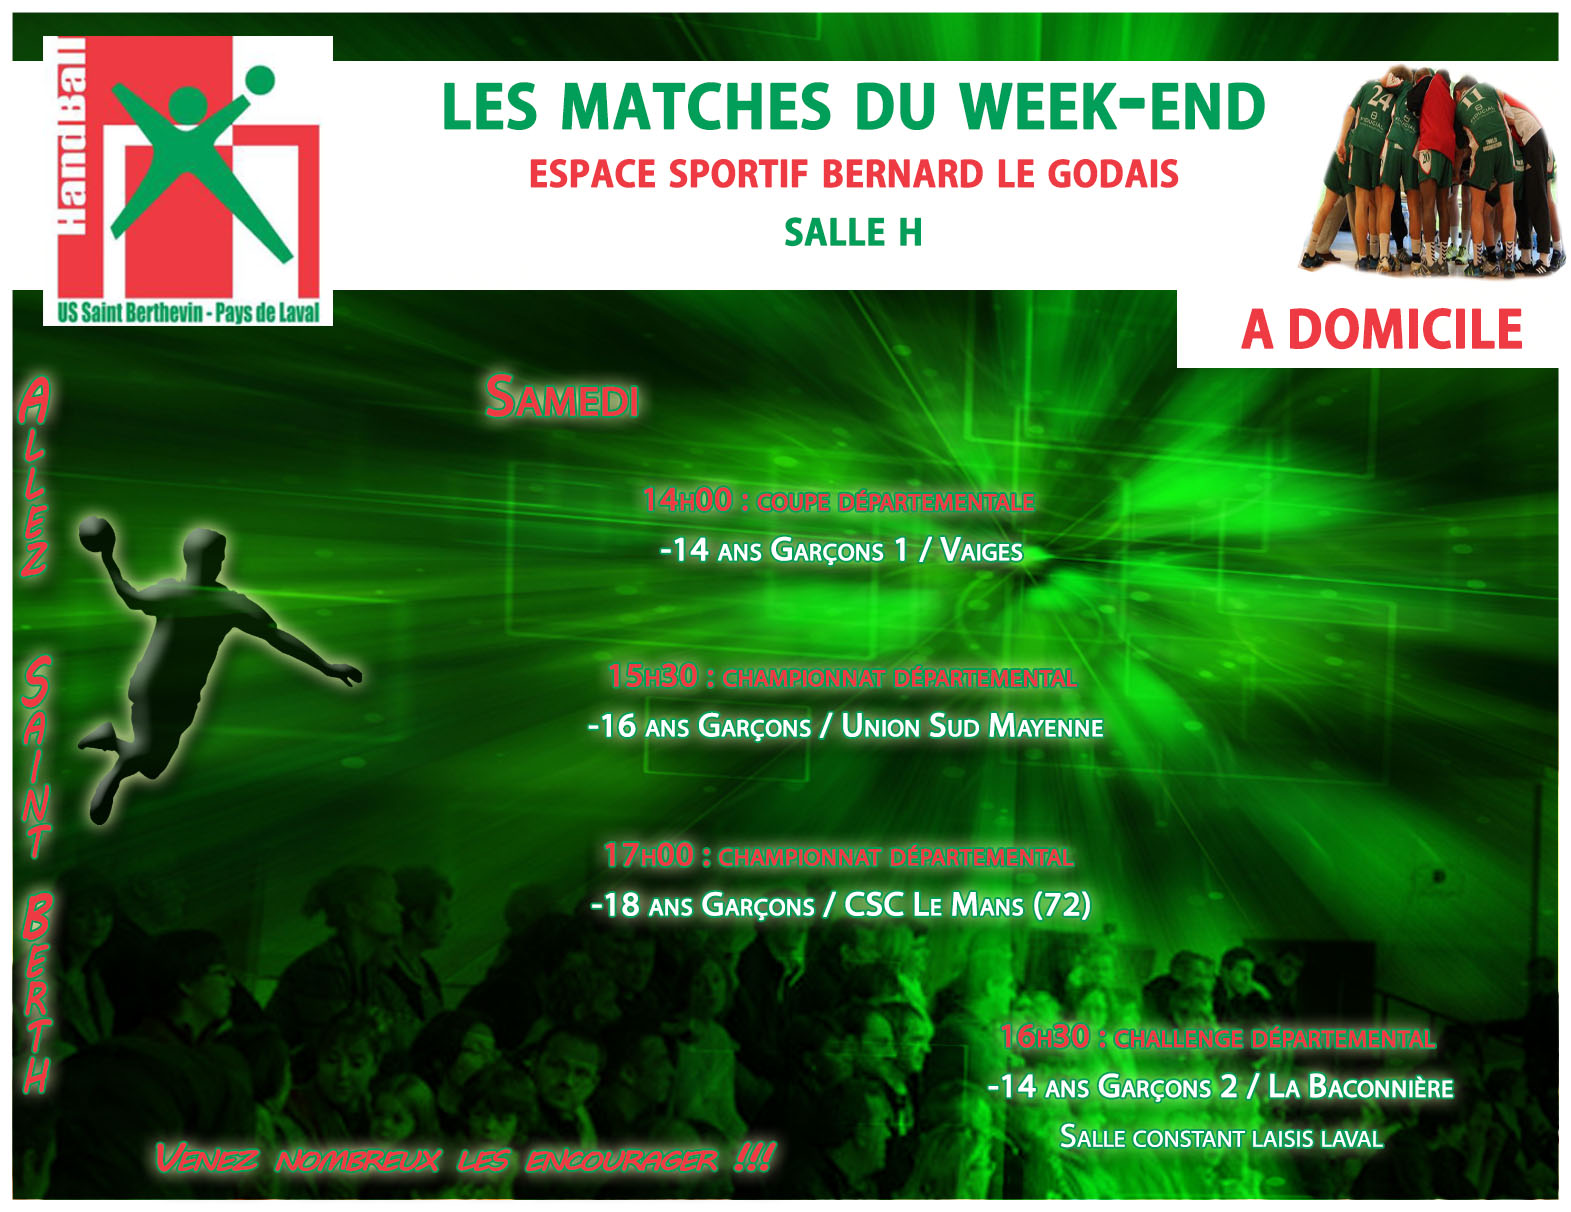 LE PROGRAMME DU WEEKEND DU 18/03/2017 A DOMICILE